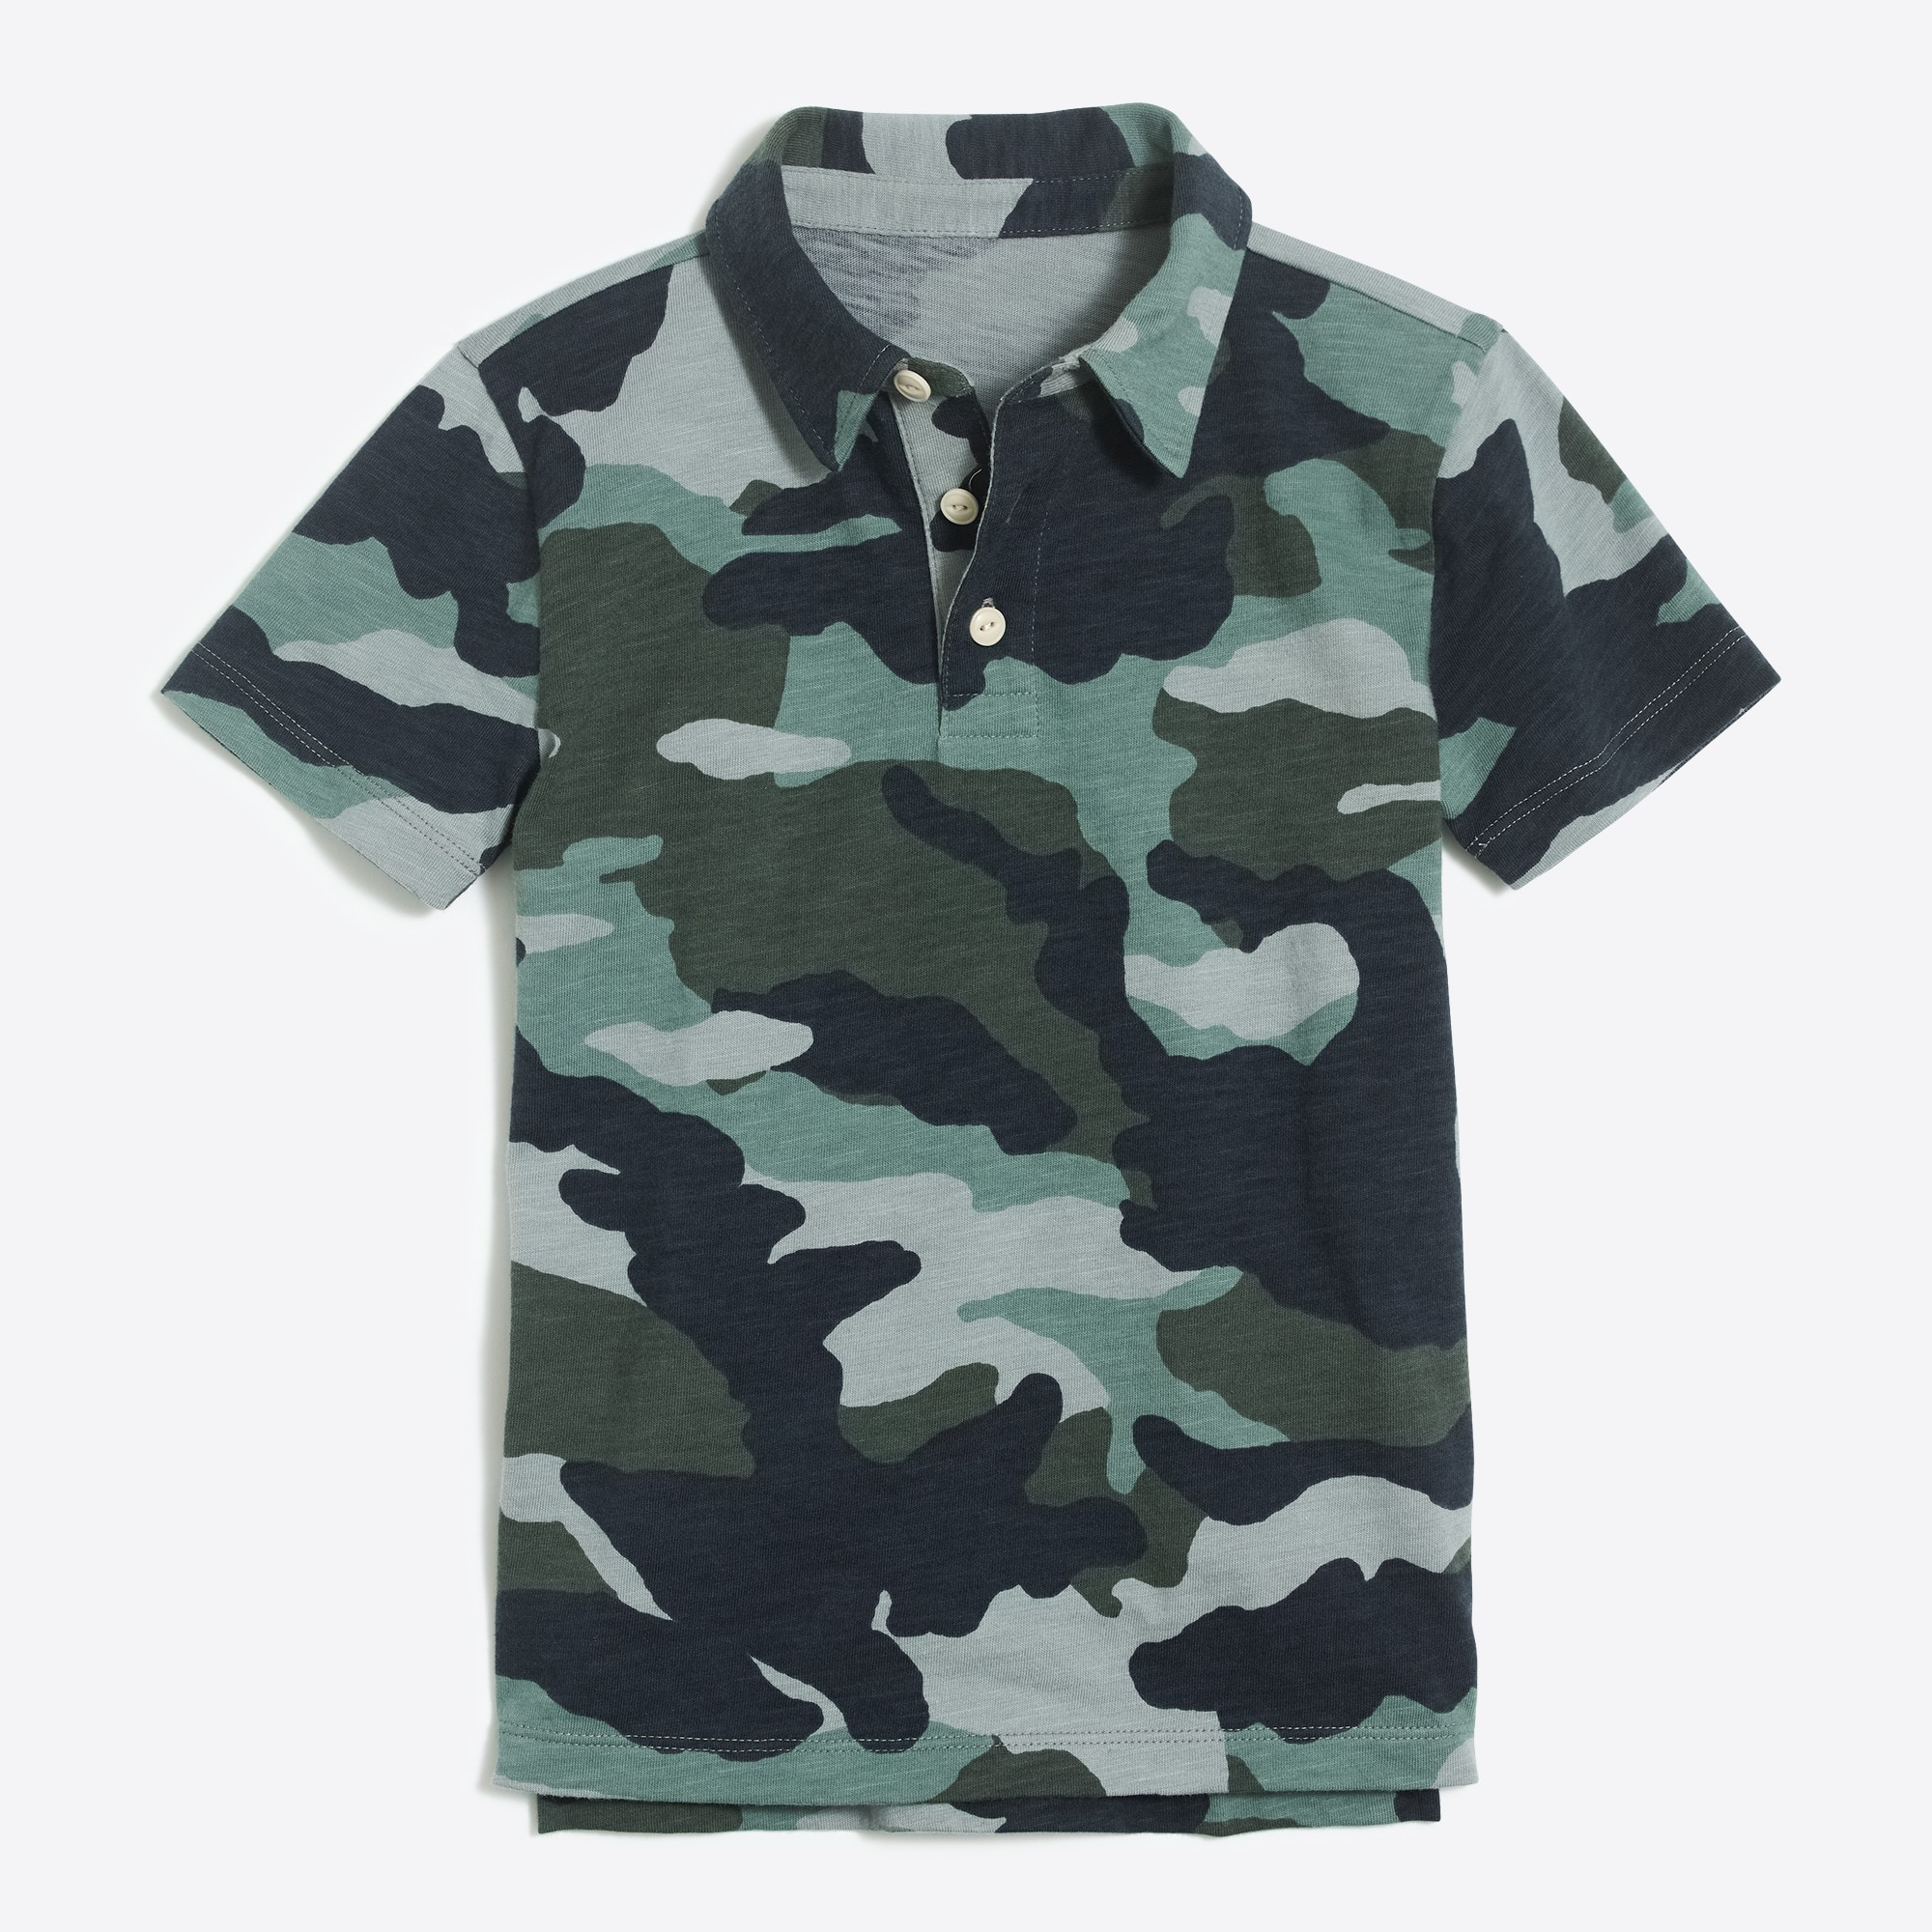 Boys' short-sleeve camo print polo shirt factoryboys the camp shop c